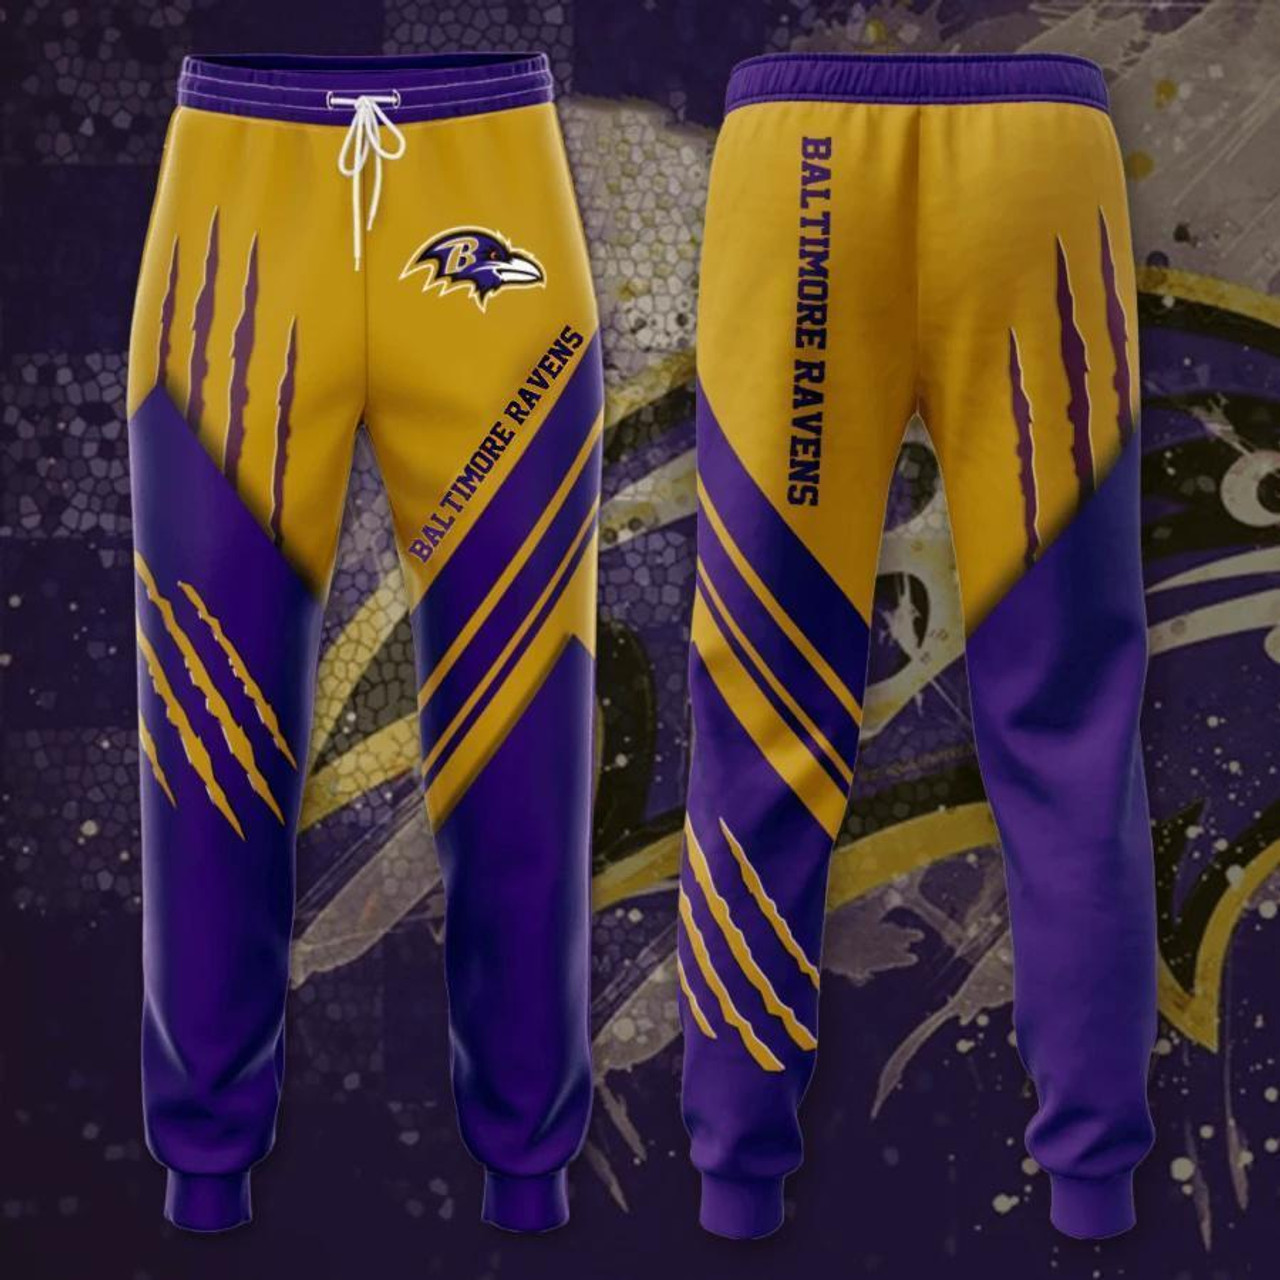 **(OFFICIAL-N.F.L.BALTIMORE-RAVENS-TRENDY-TEAM-SPORT-SWEAT-PANTS & OFFICIAL-RAVENS-TEAM-LOGOS & OFFICIAL-CLASSIC-RAVENS-TEAM-COLORS/DETAILED-CUSTOM-3D-GRAPHIC-DOUBLE-SIDED-PRINTED/WARM-PREMIUM-TRENDY-RAVENS-FASHION-GAME-DAY-TEAM-SWEAT-PANTS)**